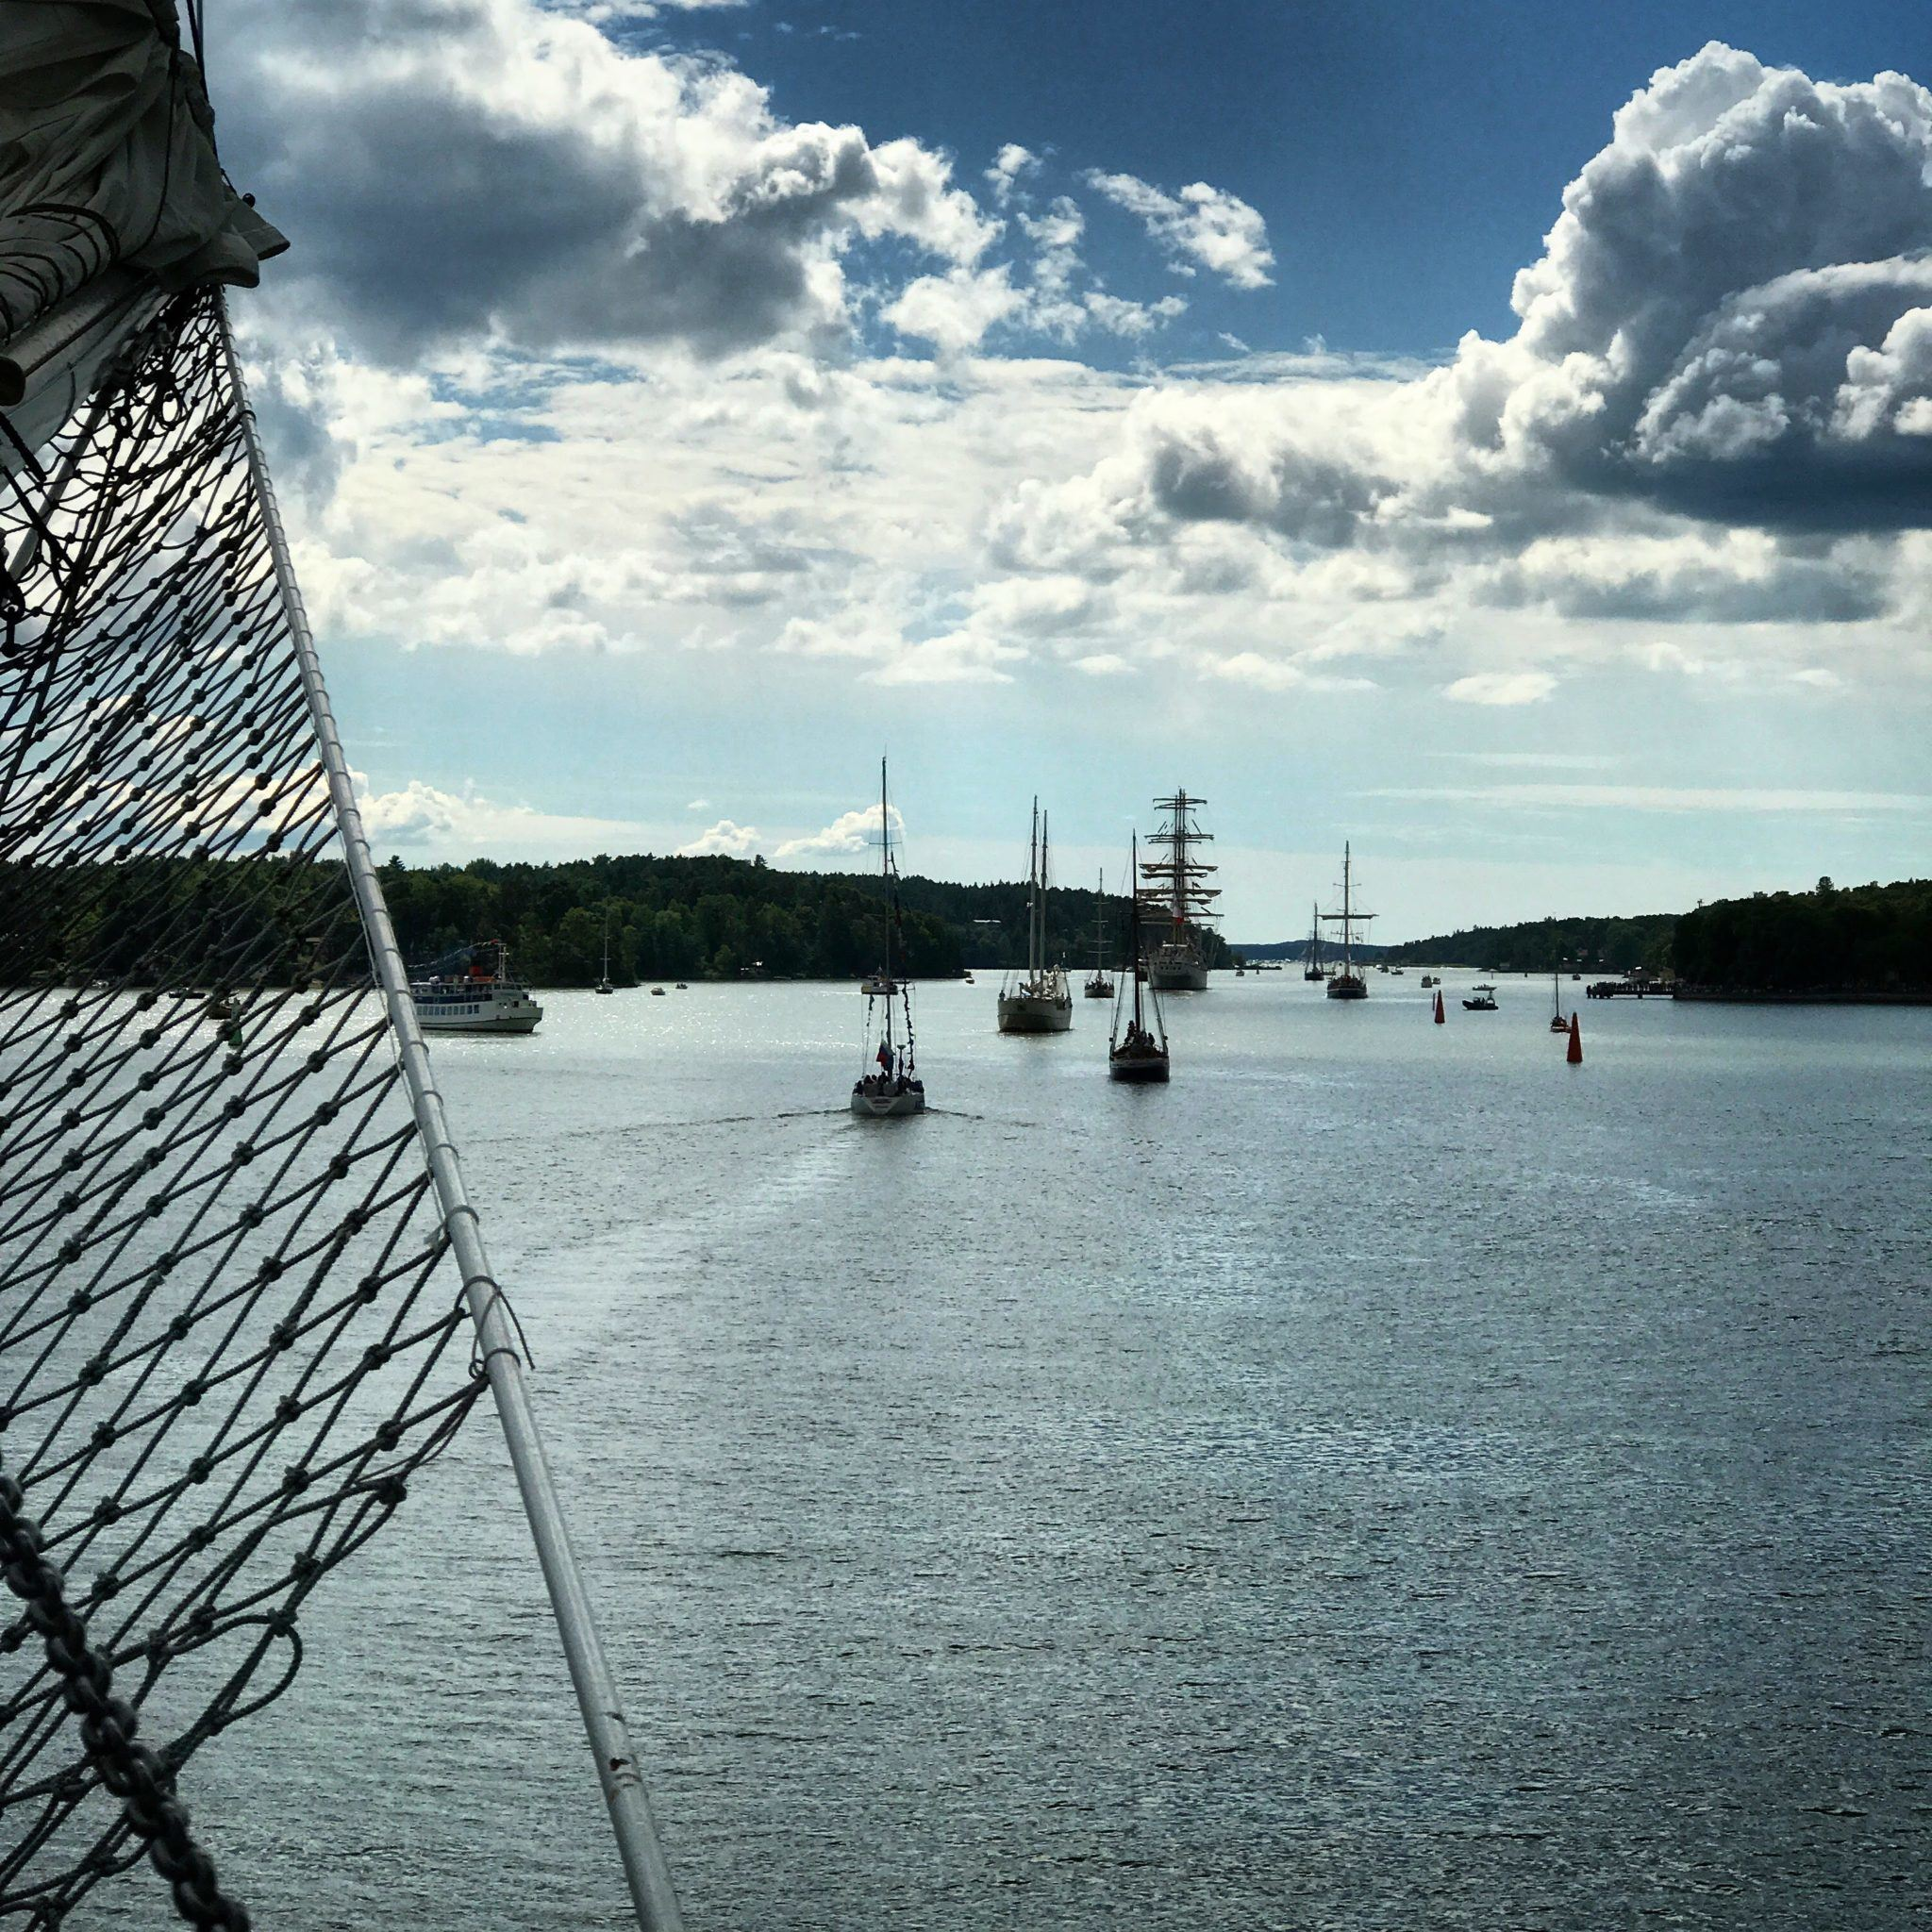 Leaving the harbor, the other tall ships and small boats are behind us.